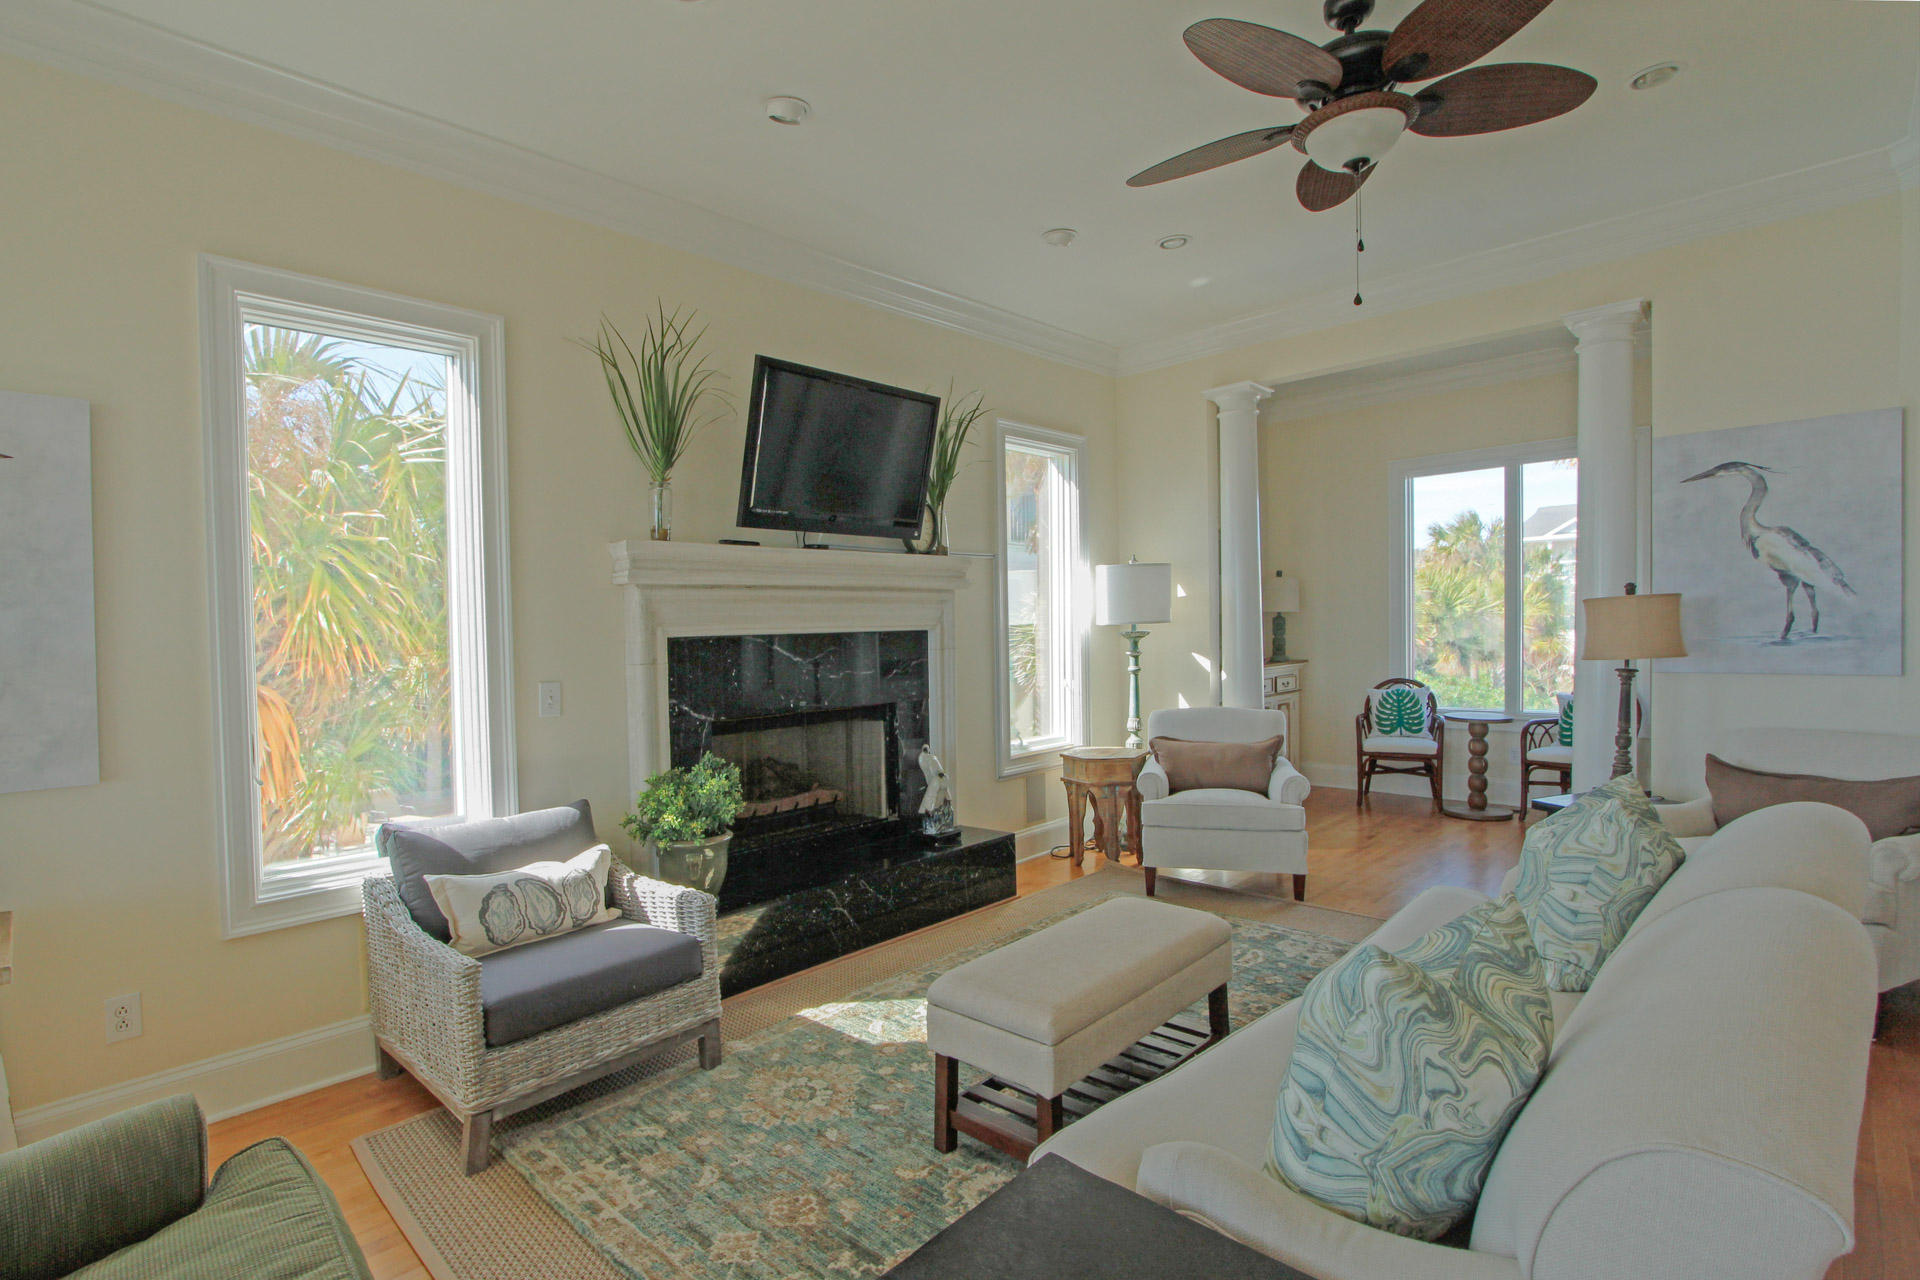 Isle of Palms Homes For Sale - 810 Ocean, Isle of Palms, SC - 26